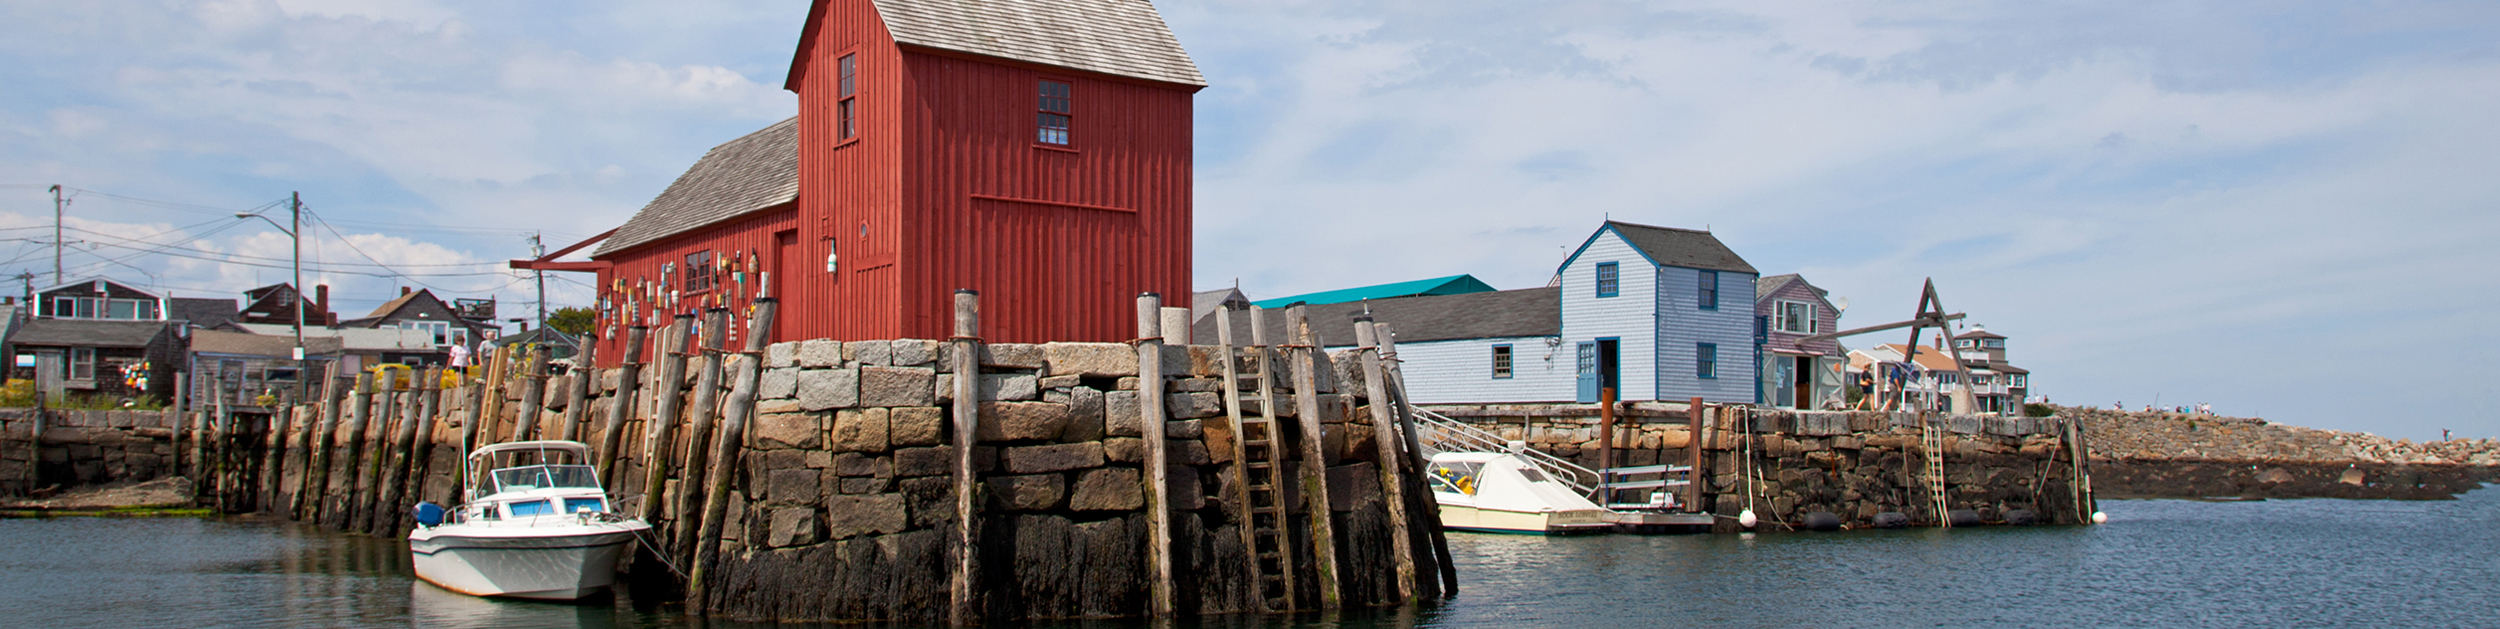 view of Motif One - a little red shack building on the water in Rockport MA